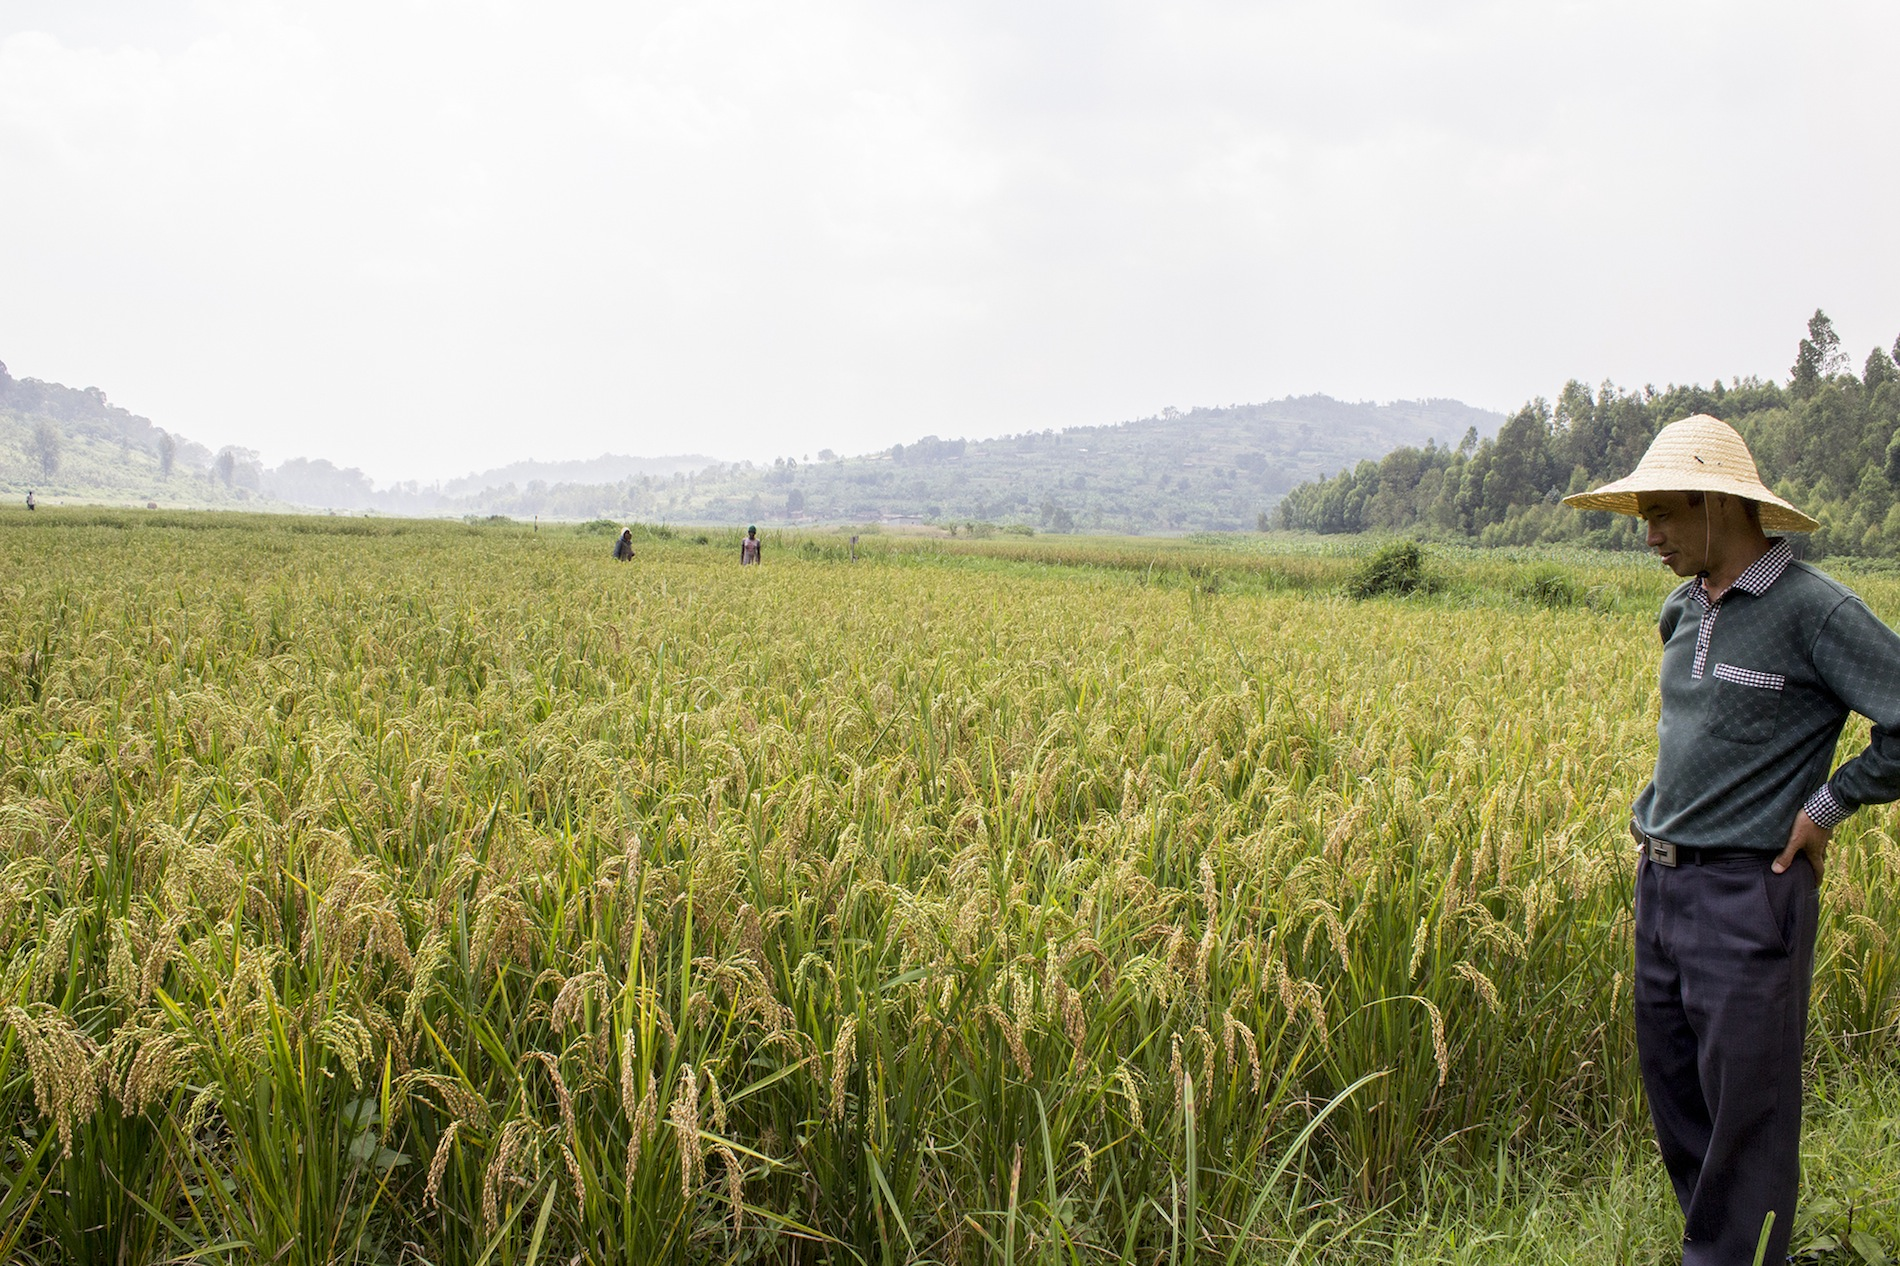 an-ratdc-staffer-observes-rice-paddies-planted-near-the-center